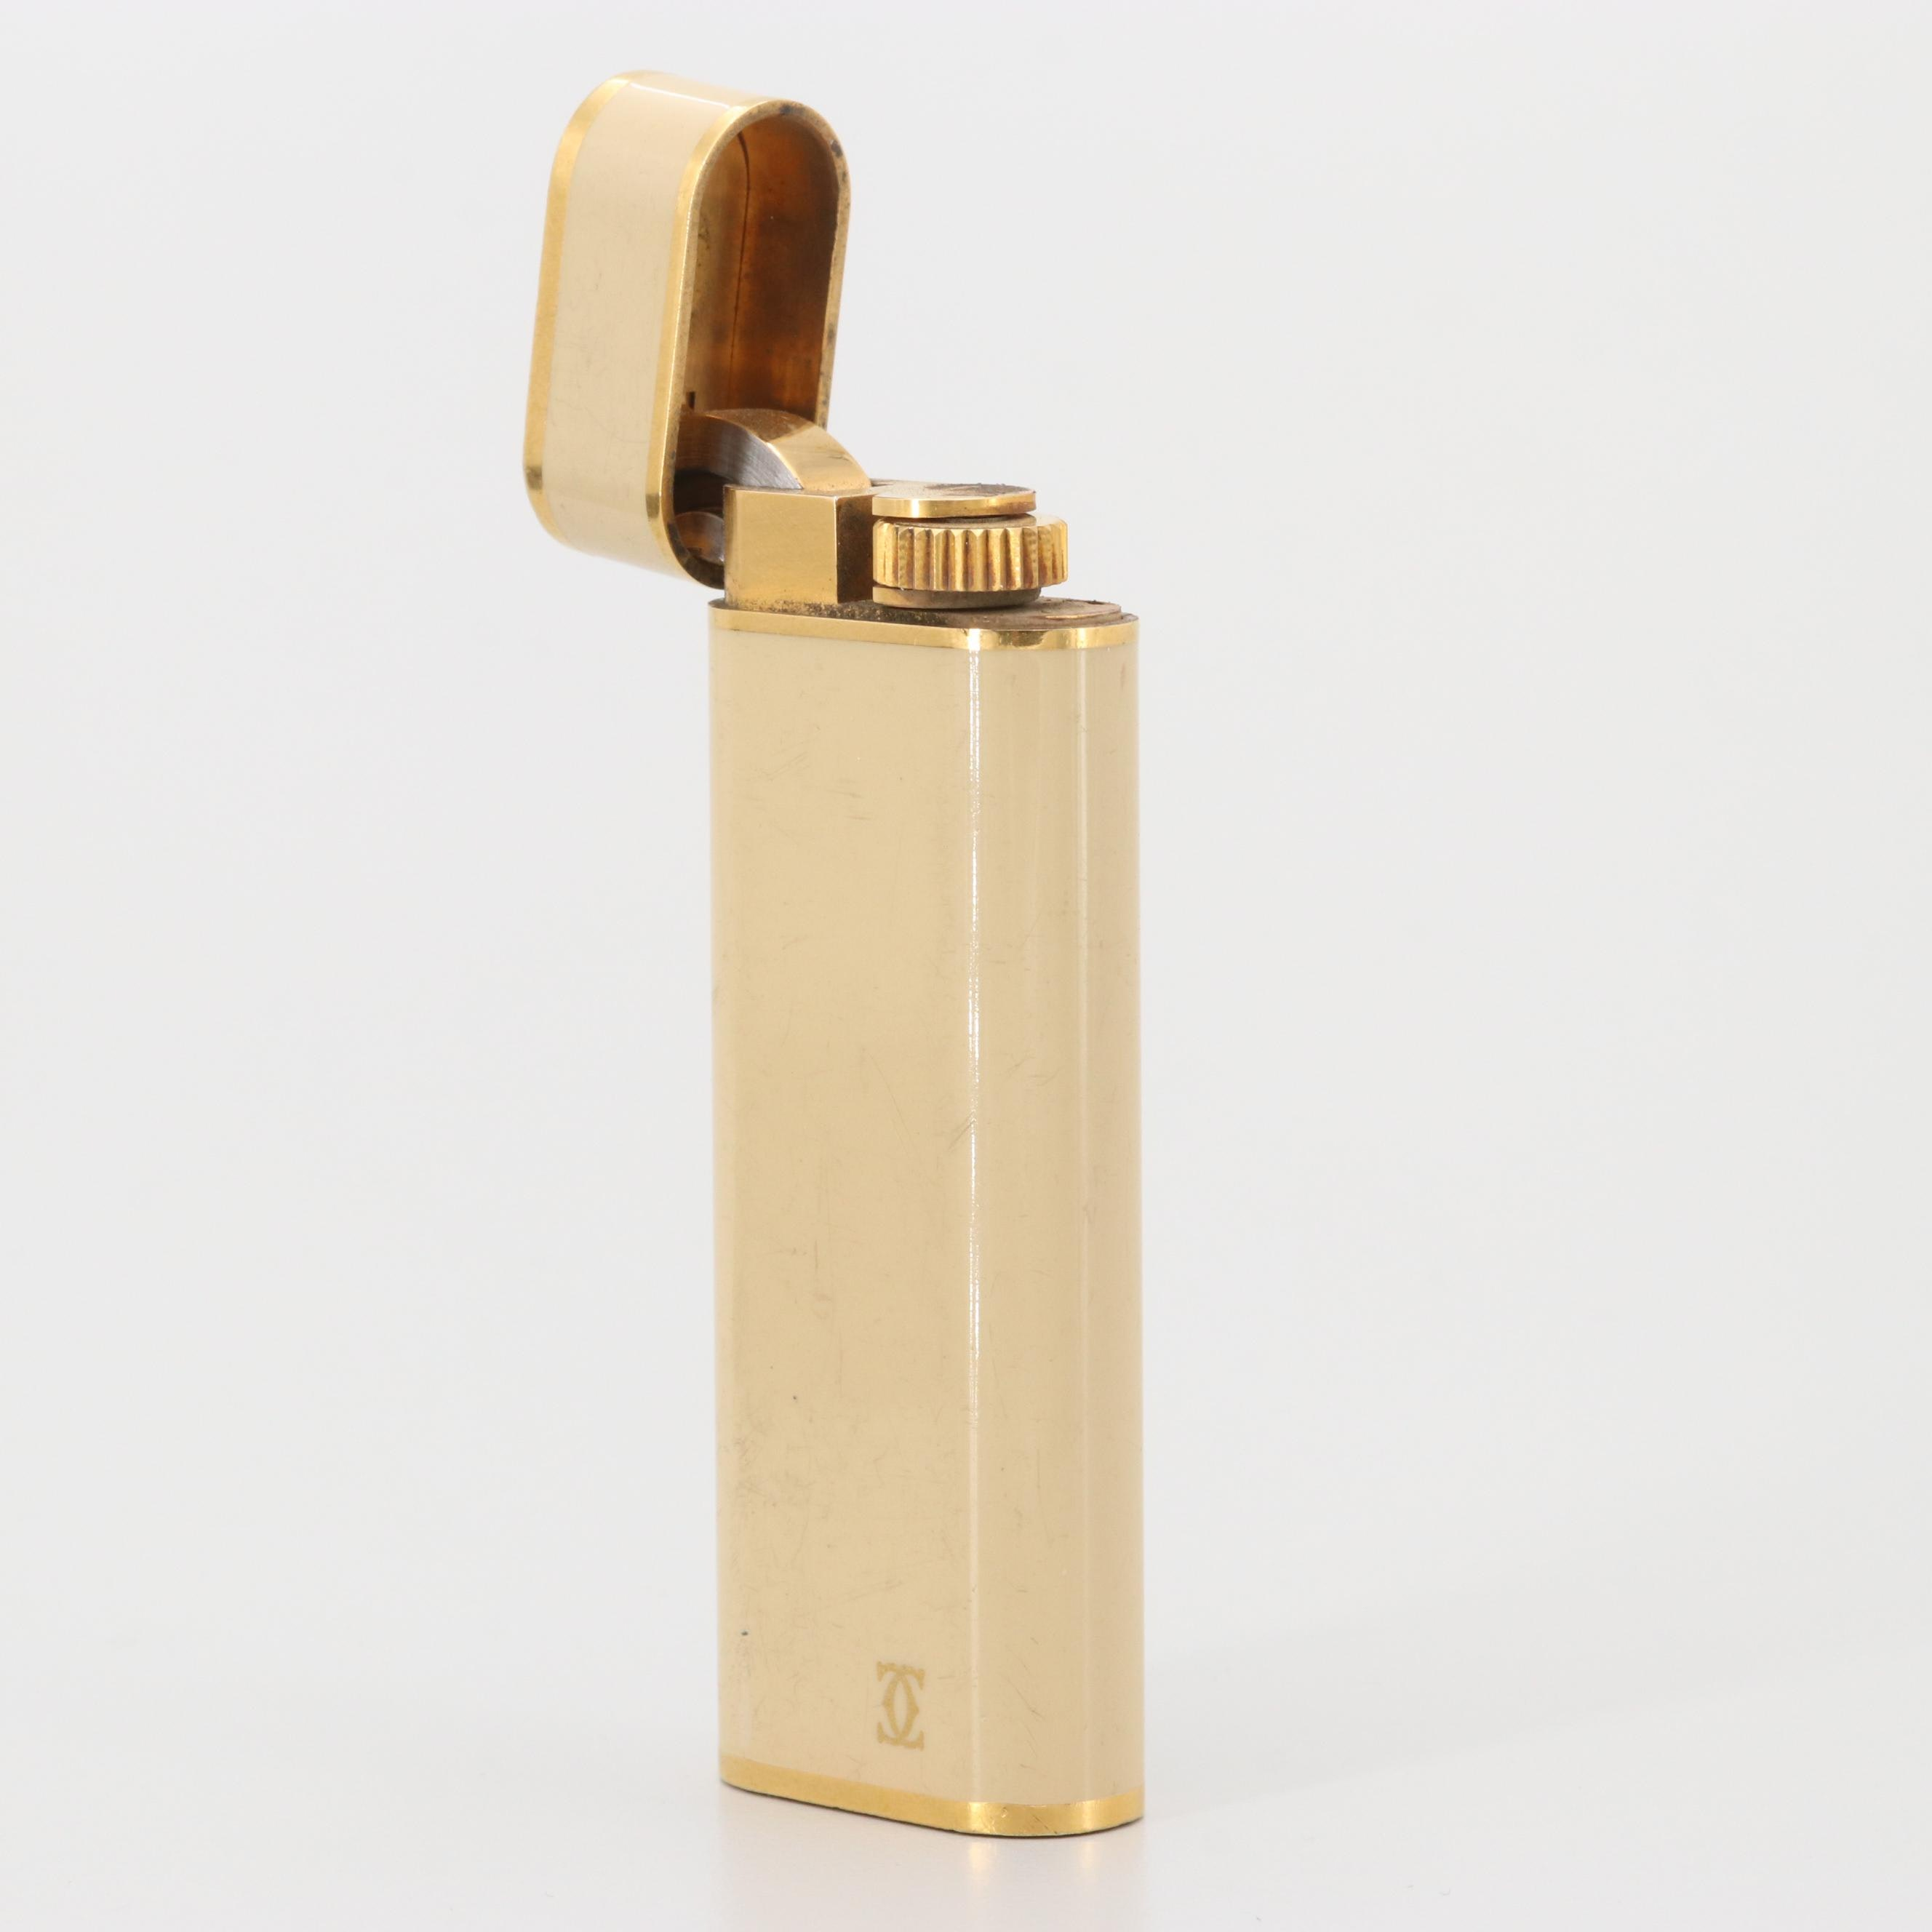 Vintage Cartier Gold Plated Oval Lighter with Lacquer Finish